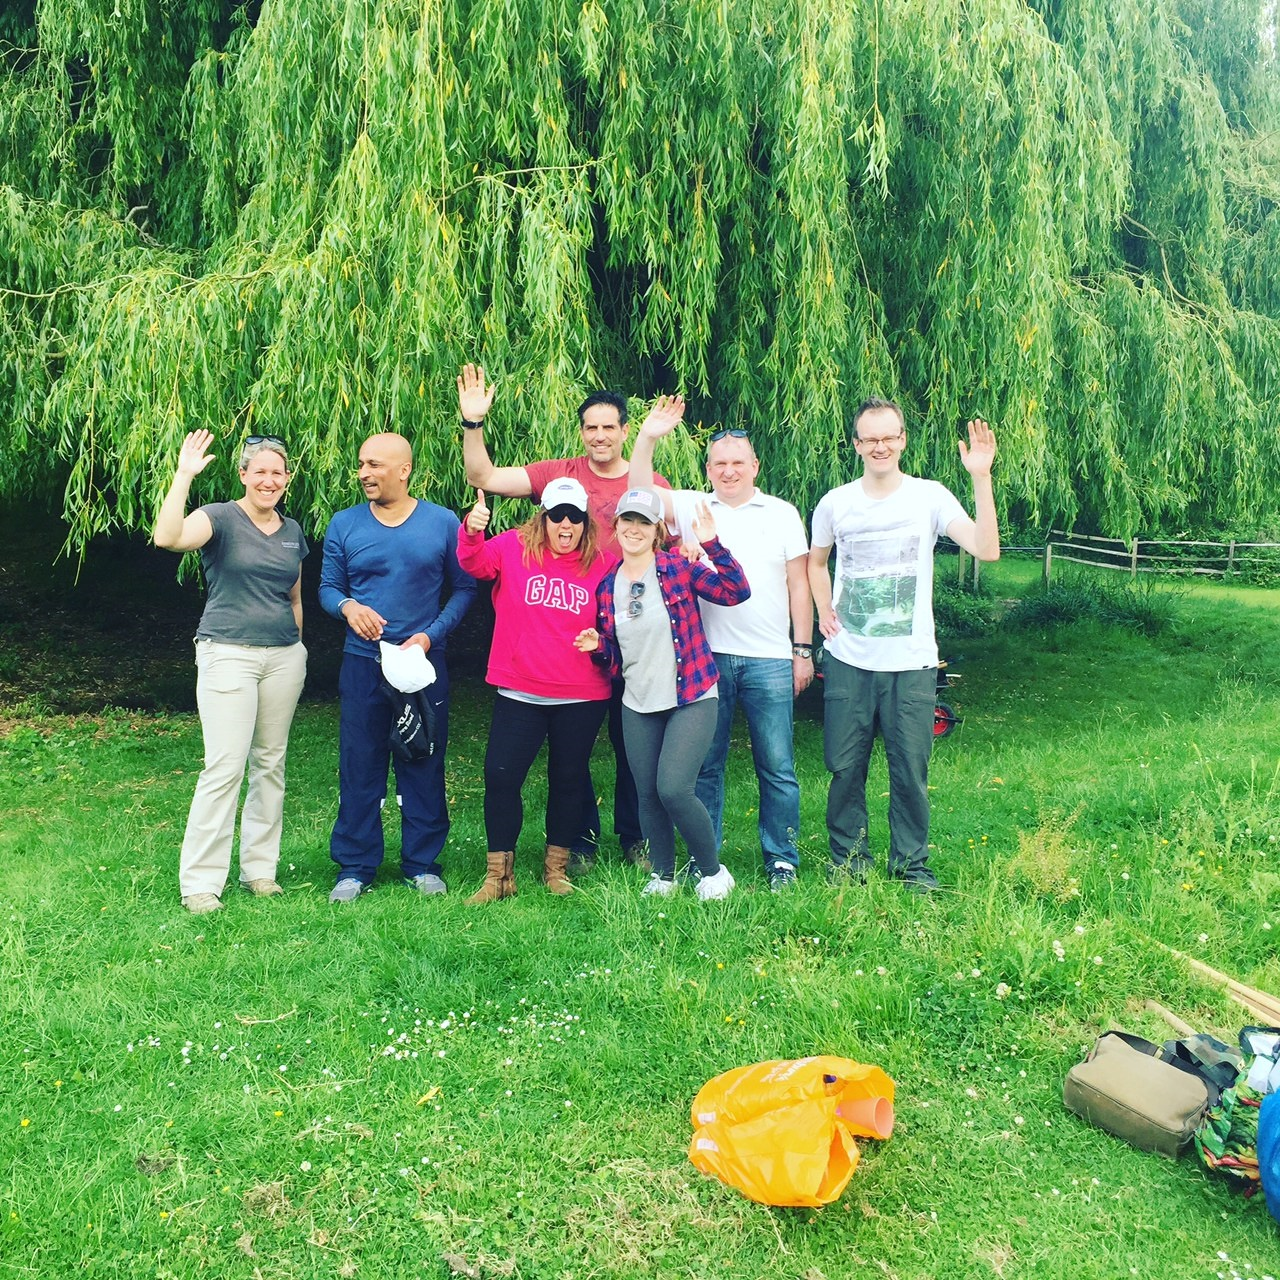 2nd Quarter UK Fish Pond team photo 1 May 24 2017